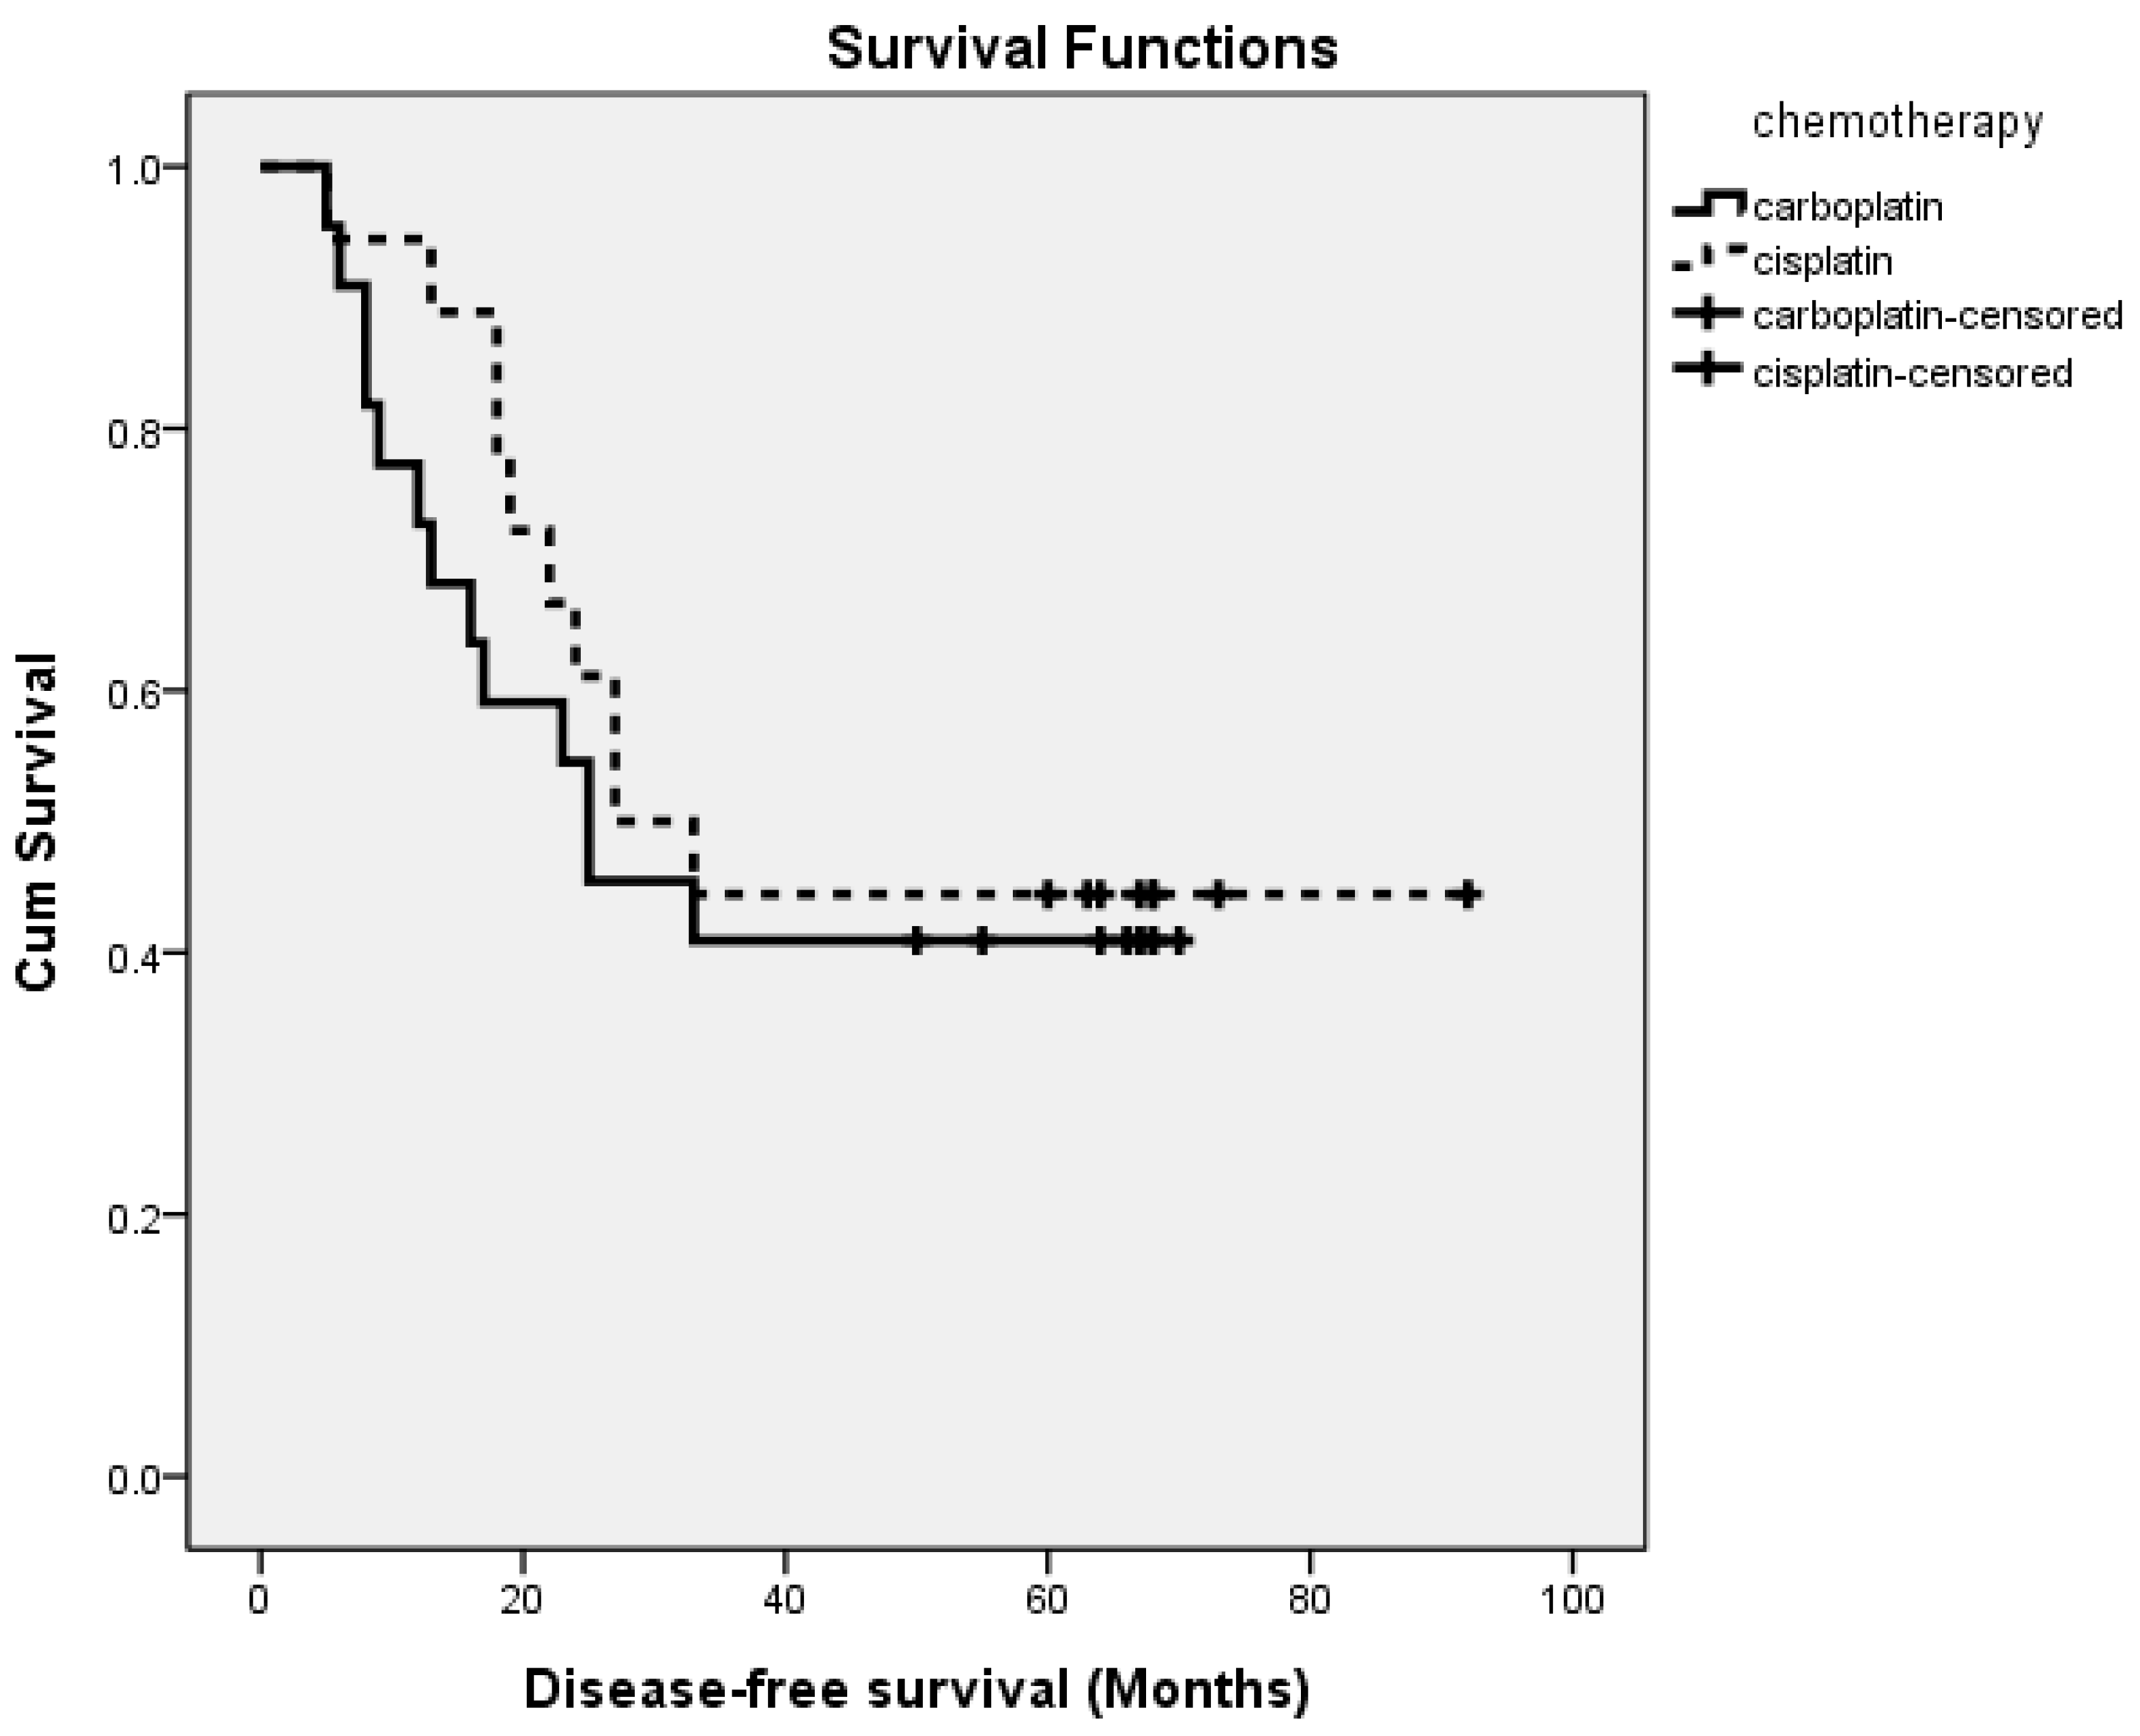 Ijerph Free Full Text Comparing Paclitaxel Carboplatin With Paclitaxel Cisplatin As The Front Line Chemotherapy For Patients With Figo Iiic Serous Type Tubo Ovarian Cancer Html